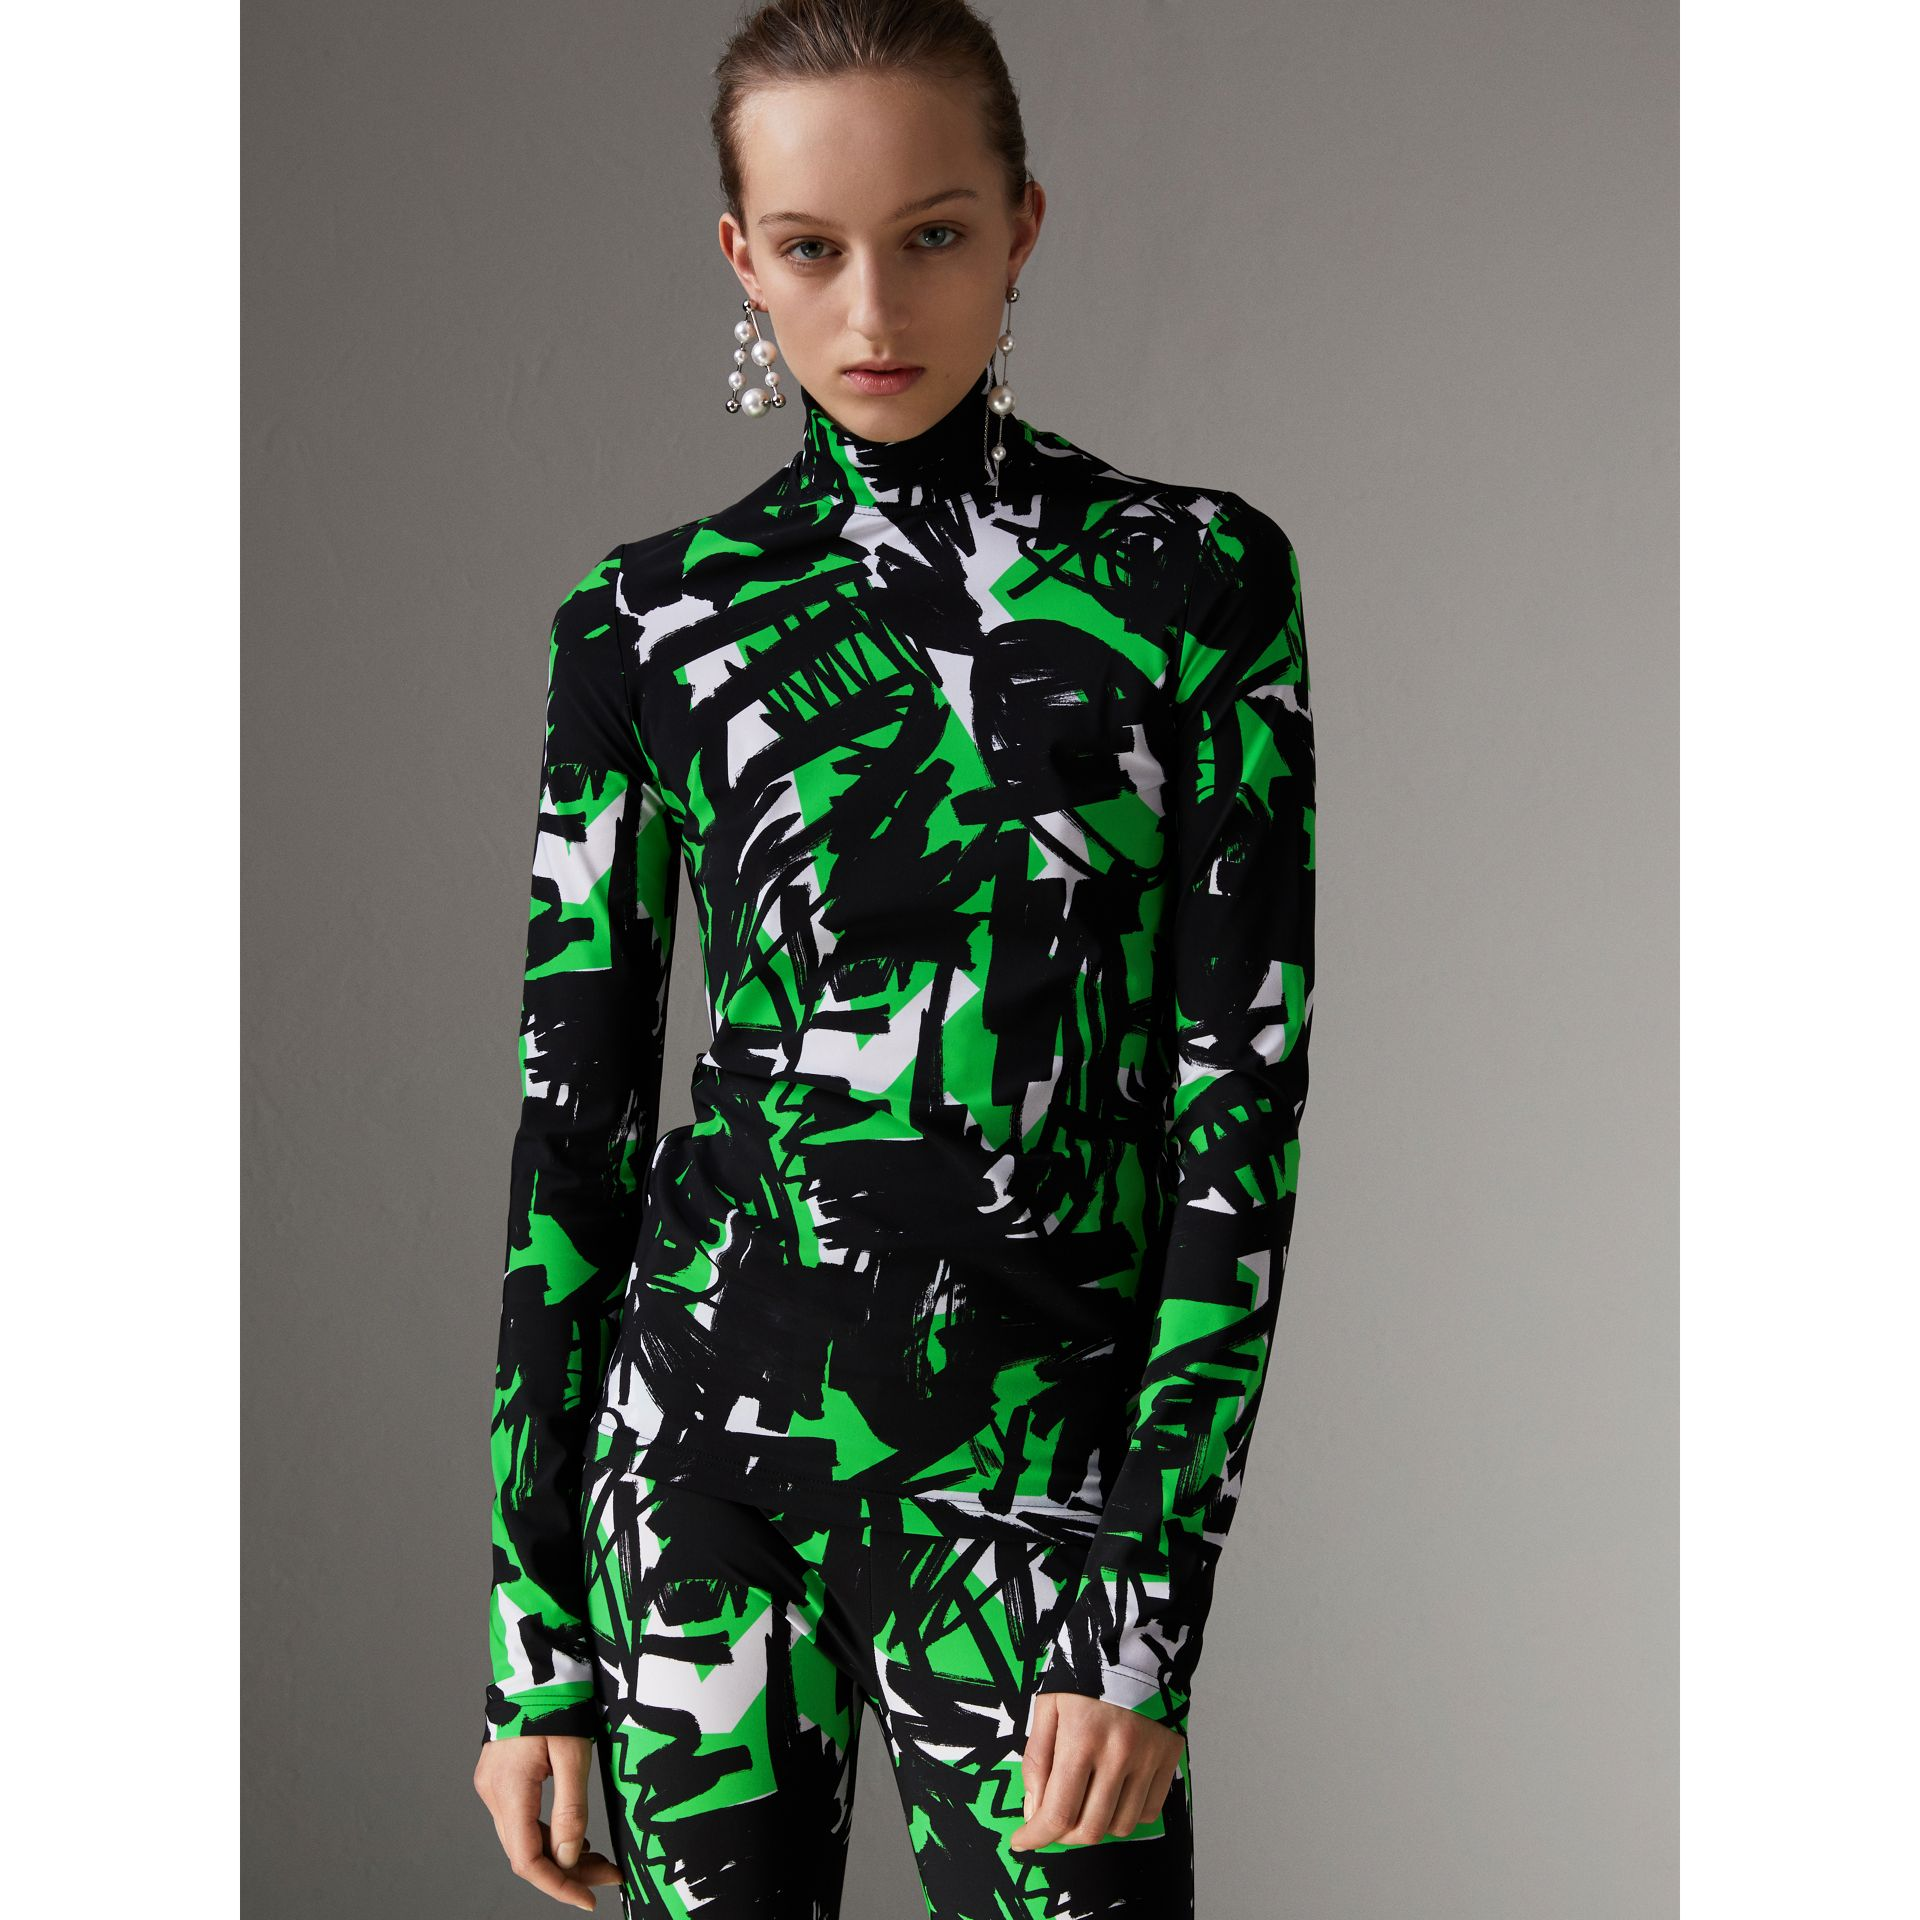 Graffiti Print Stretch Jersey Top in Neon Green - Women | Burberry United Kingdom - gallery image 4